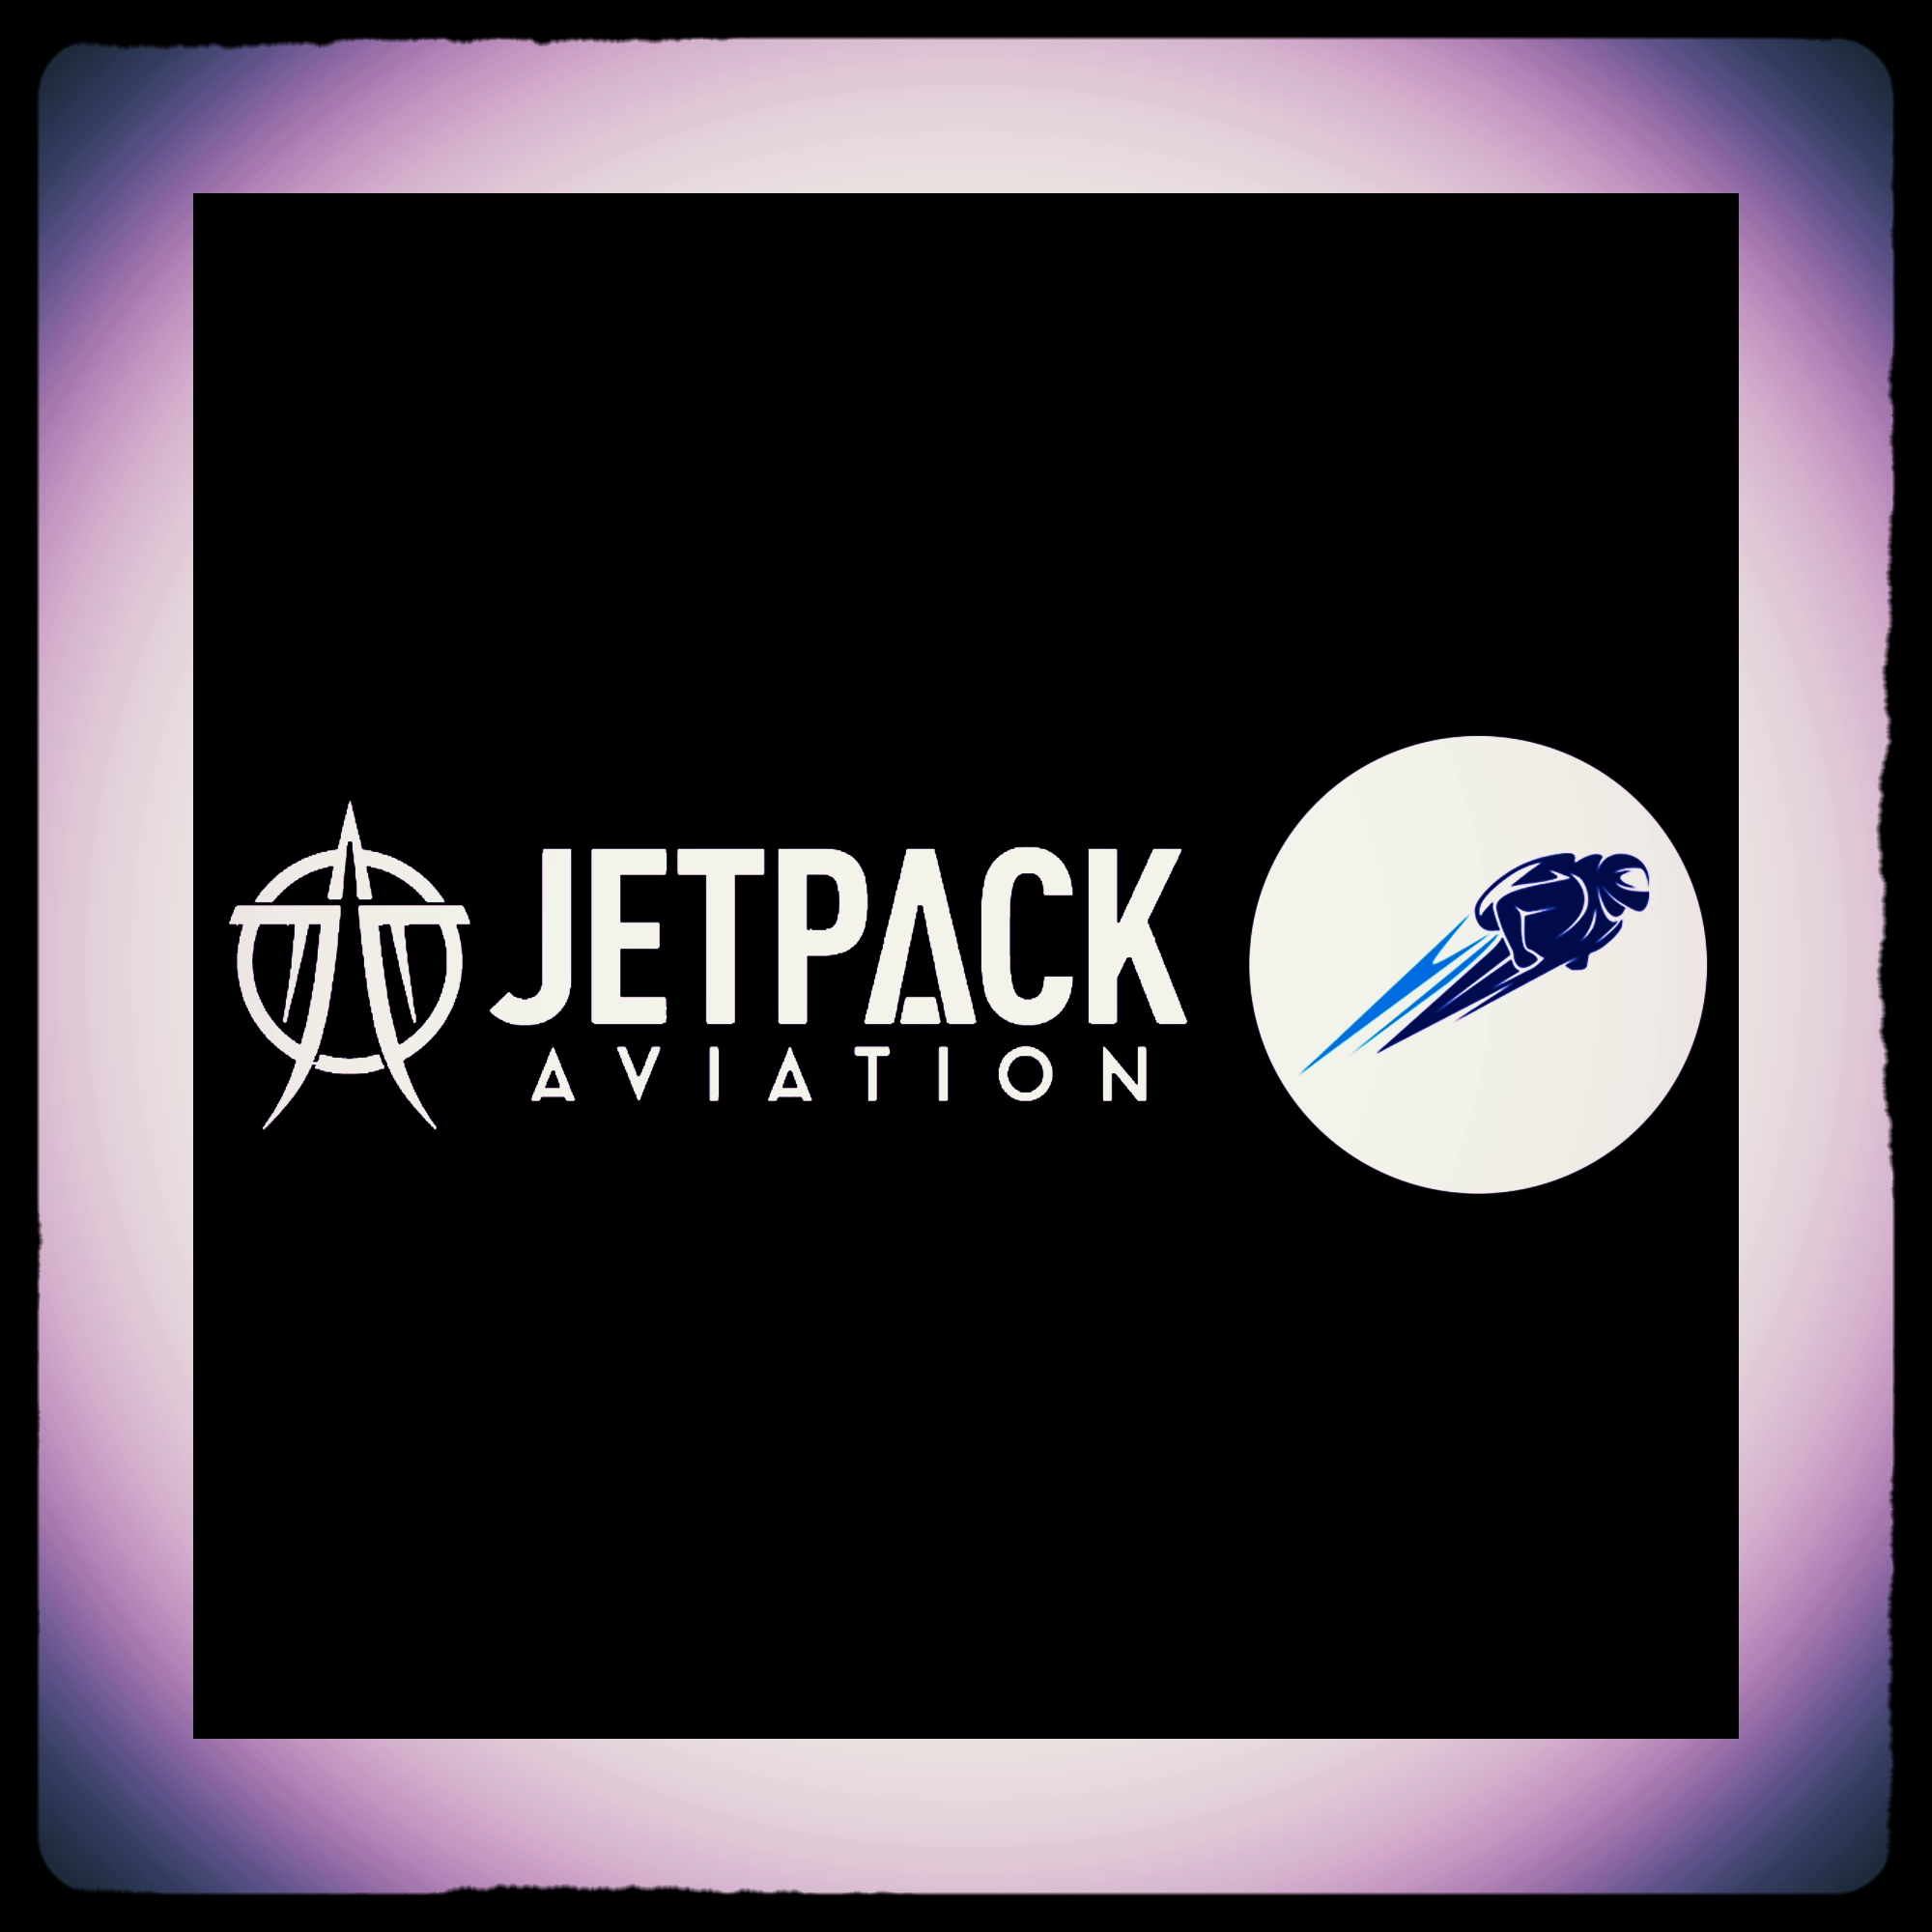 JetPack Aviation.jpg